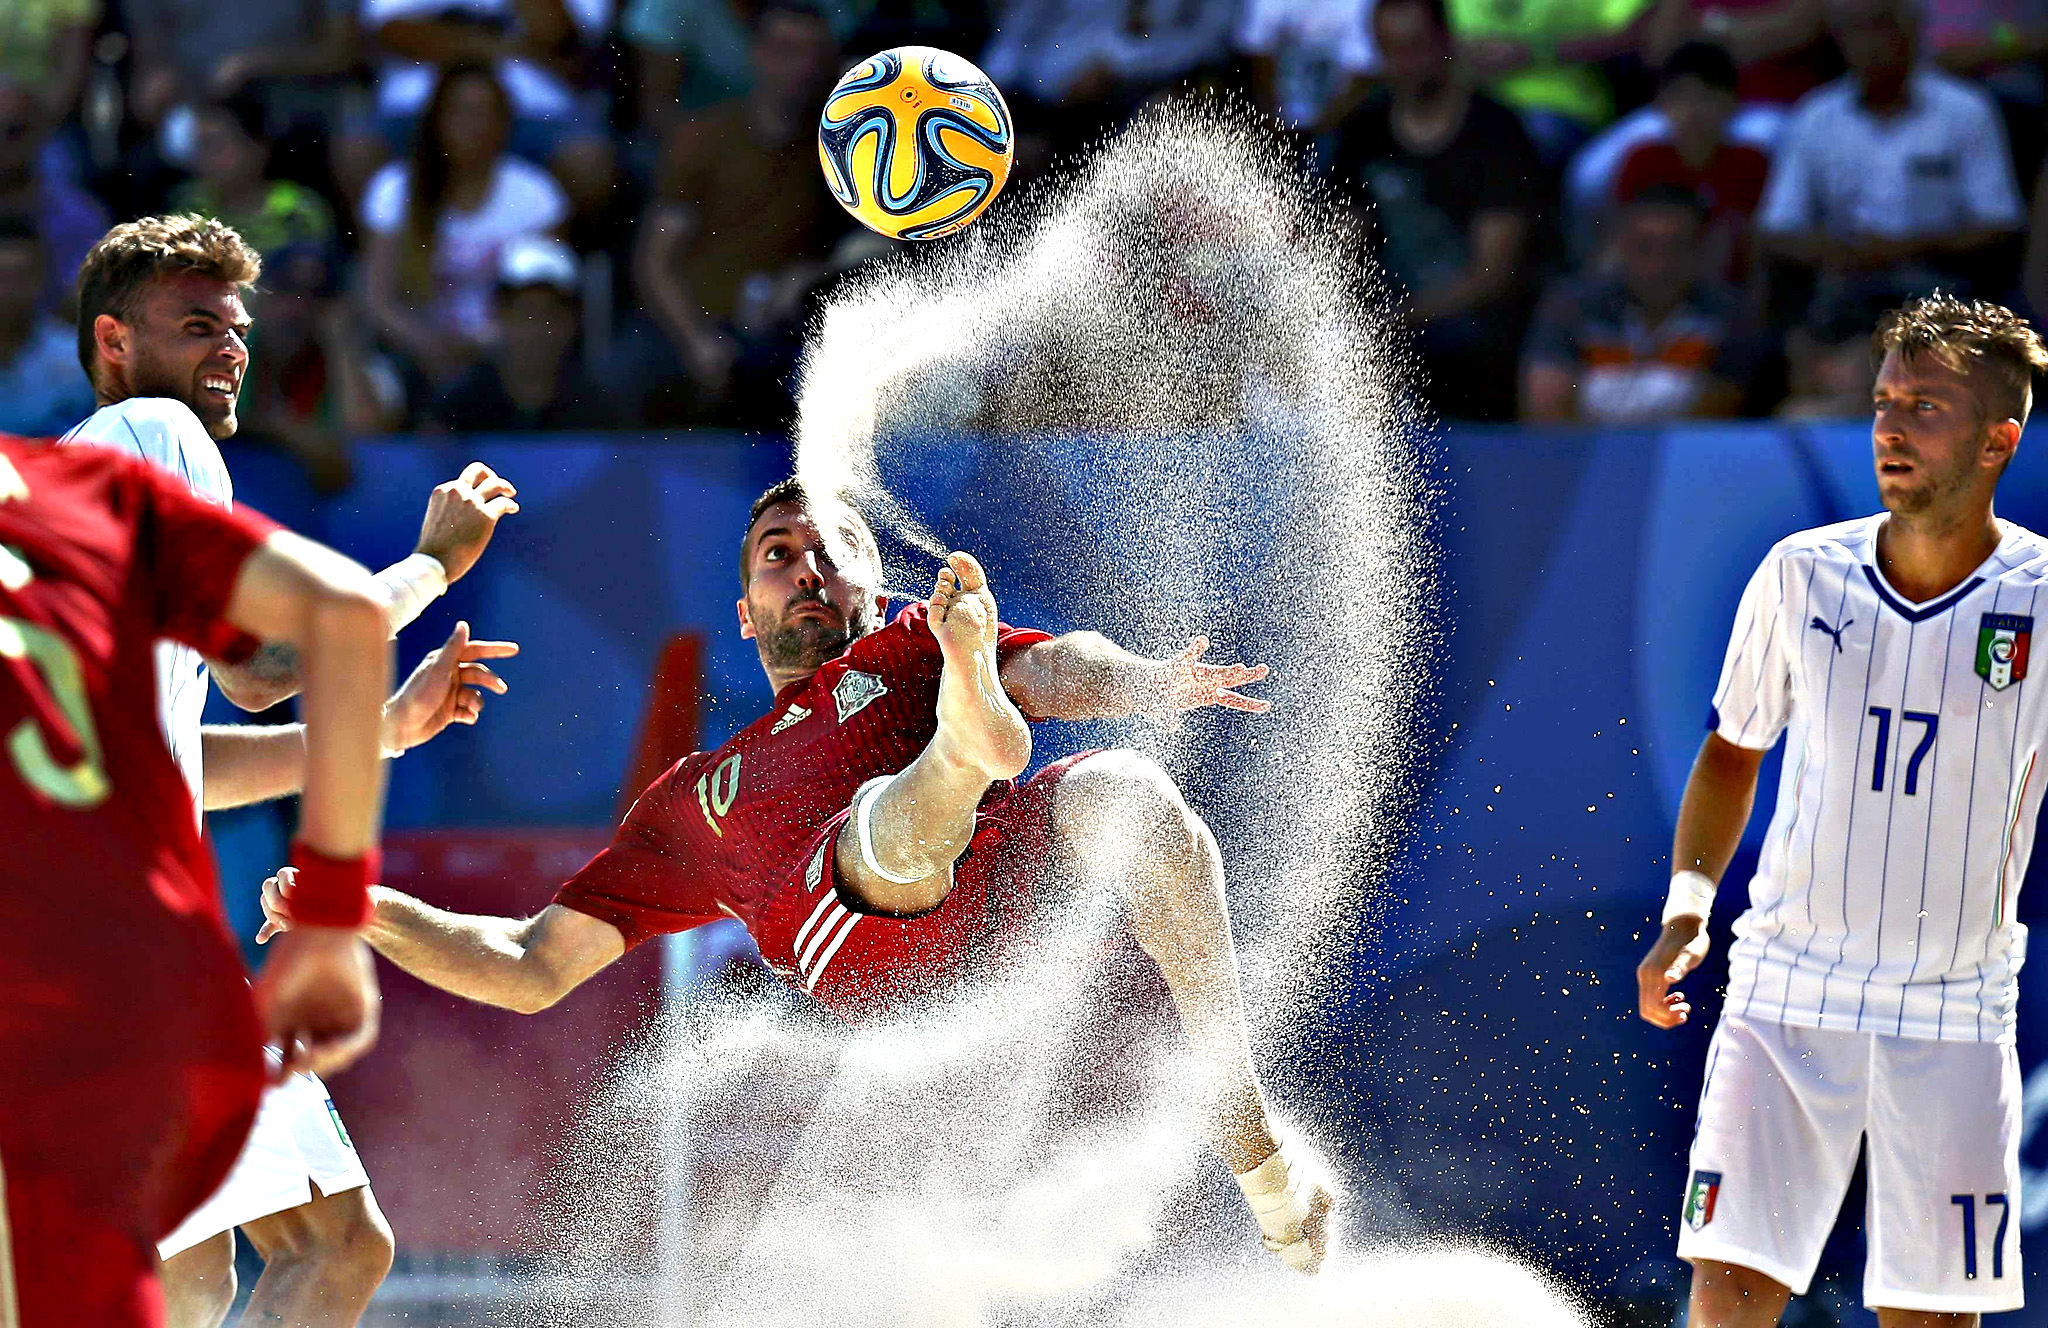 Llorenc Gomez of Spain kicks the ball next to Simone Marinai of Italy during their group stage beach football match at the 1st European Games in Baku, Azerbaijan, June 24, 2015.